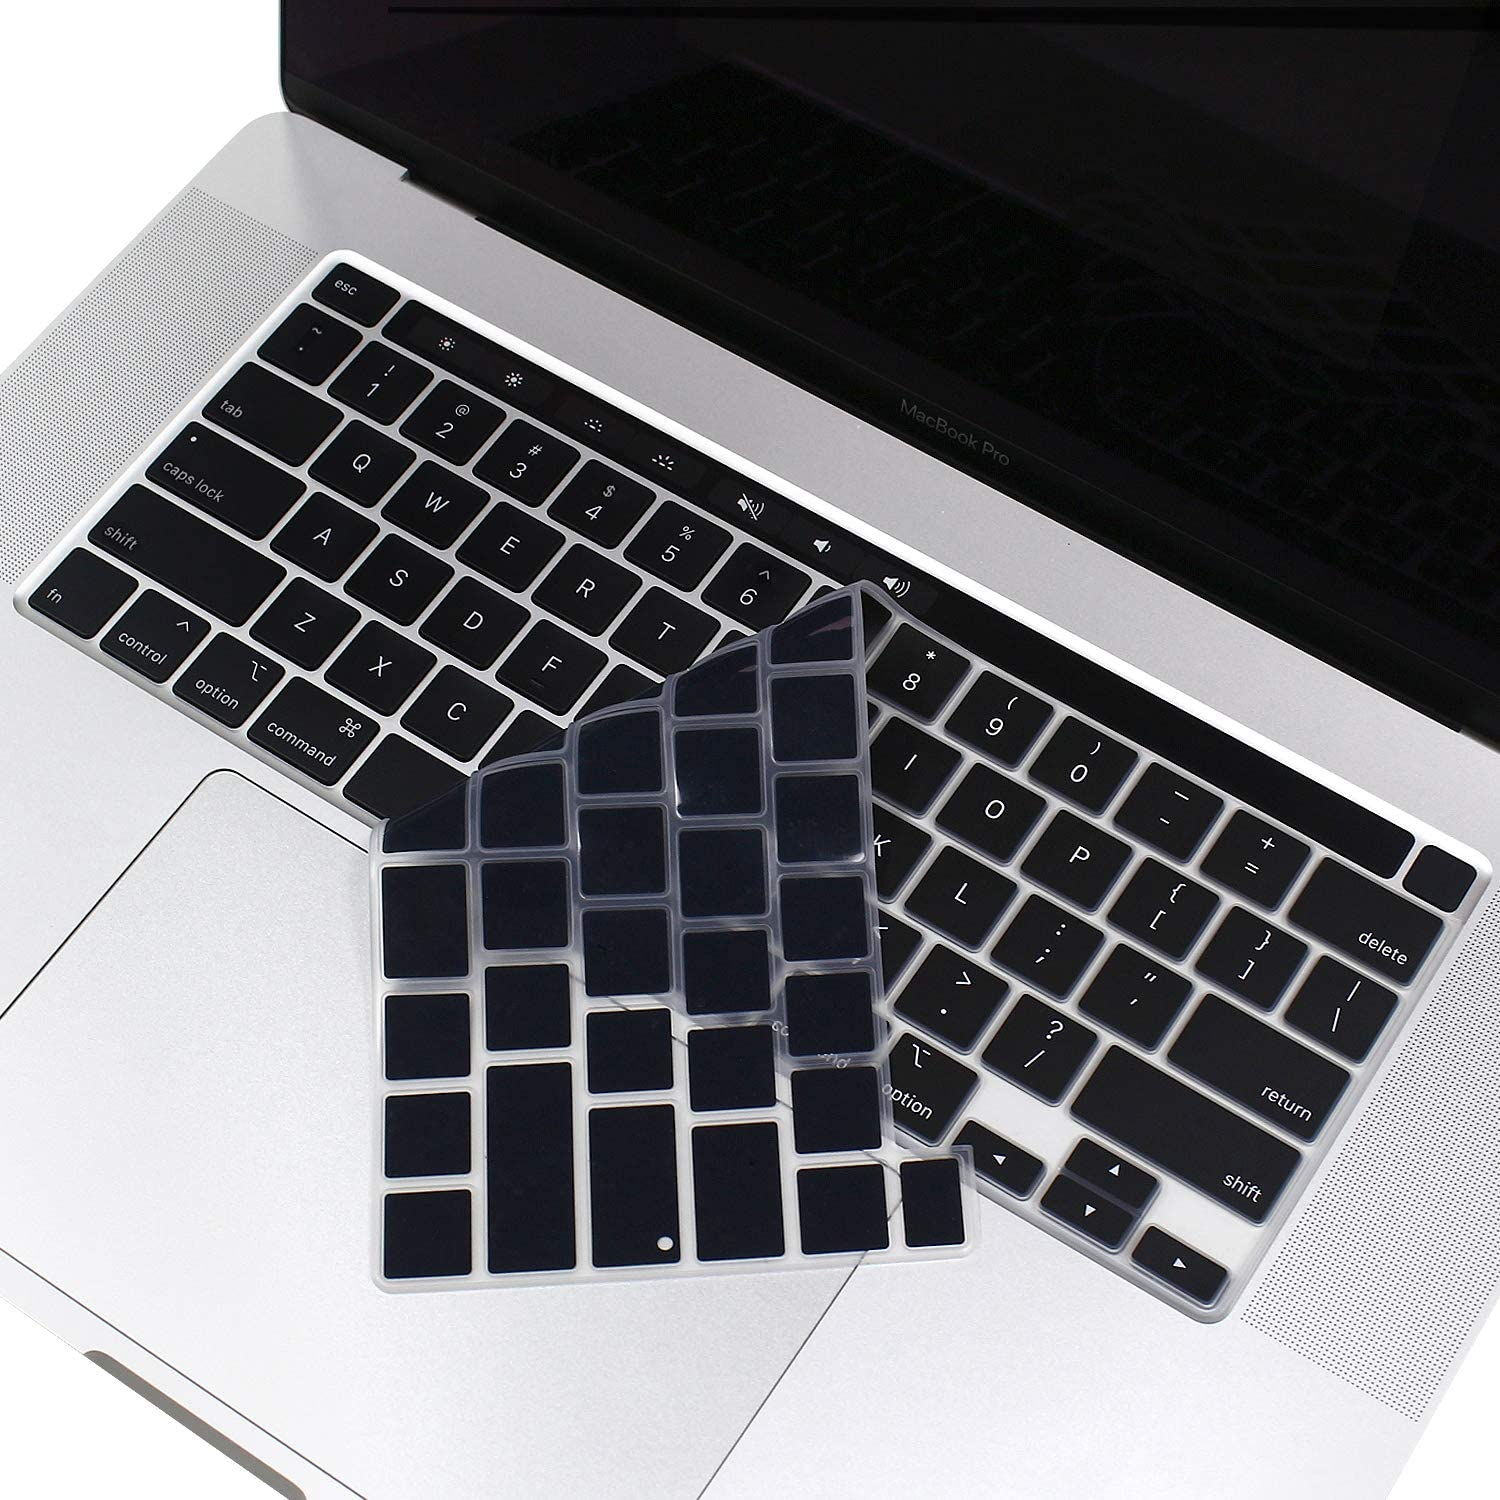 Ultra Thin Silicone Keyboard Protective Skin for MacBook Pro 16-Inch with Touch Bar//Touch ID A2141 2019 Black US Layout Keyboard ProElife Premium Keyboard Cover for New MacBook Pro 16 Inch 2019